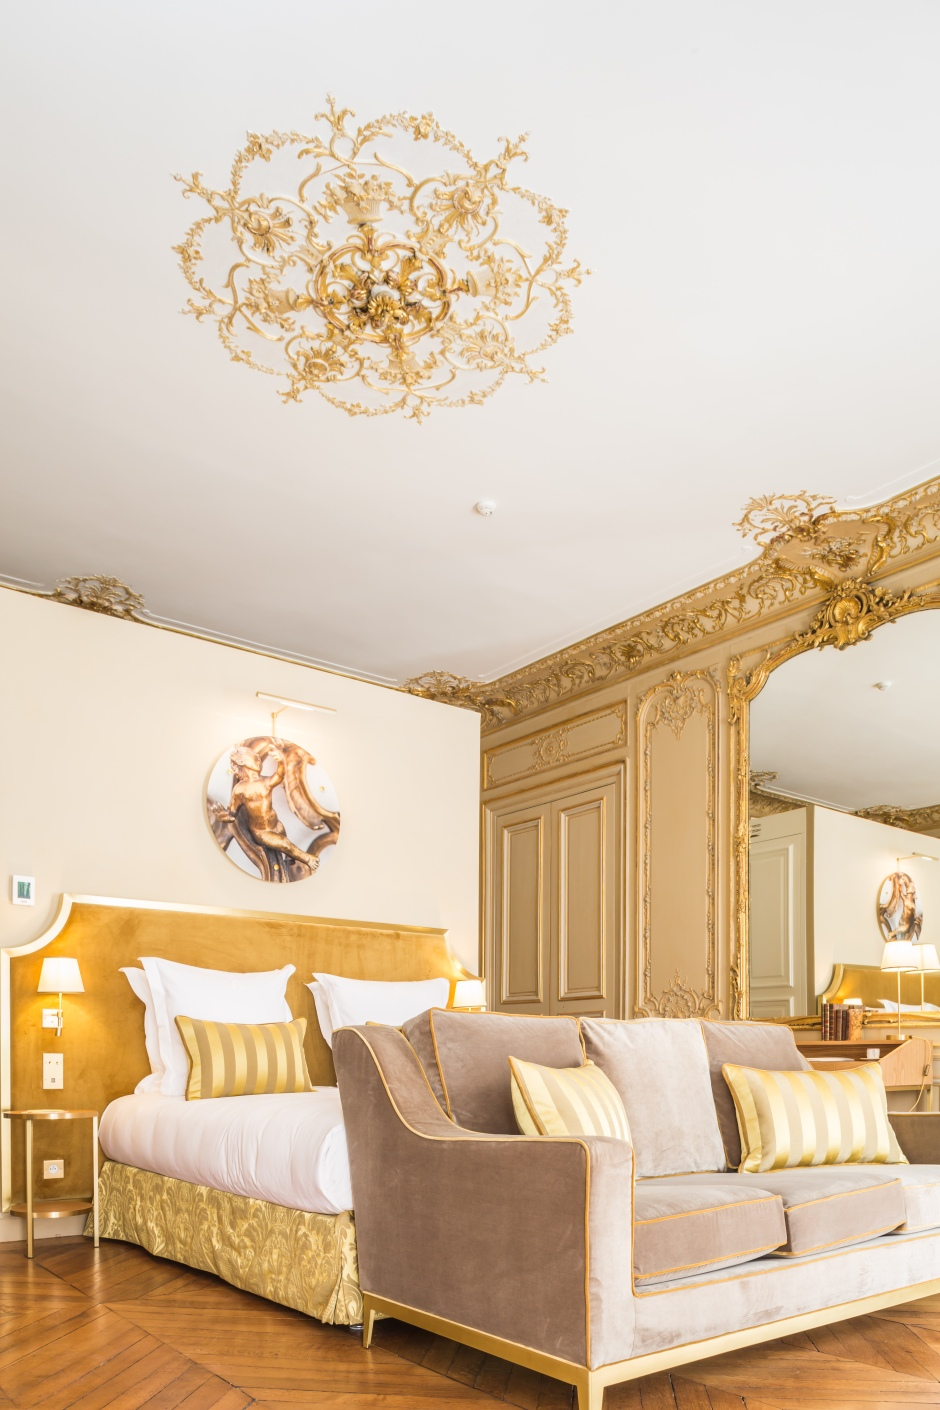 Alfred-Sommier-Hotel-Paris-248